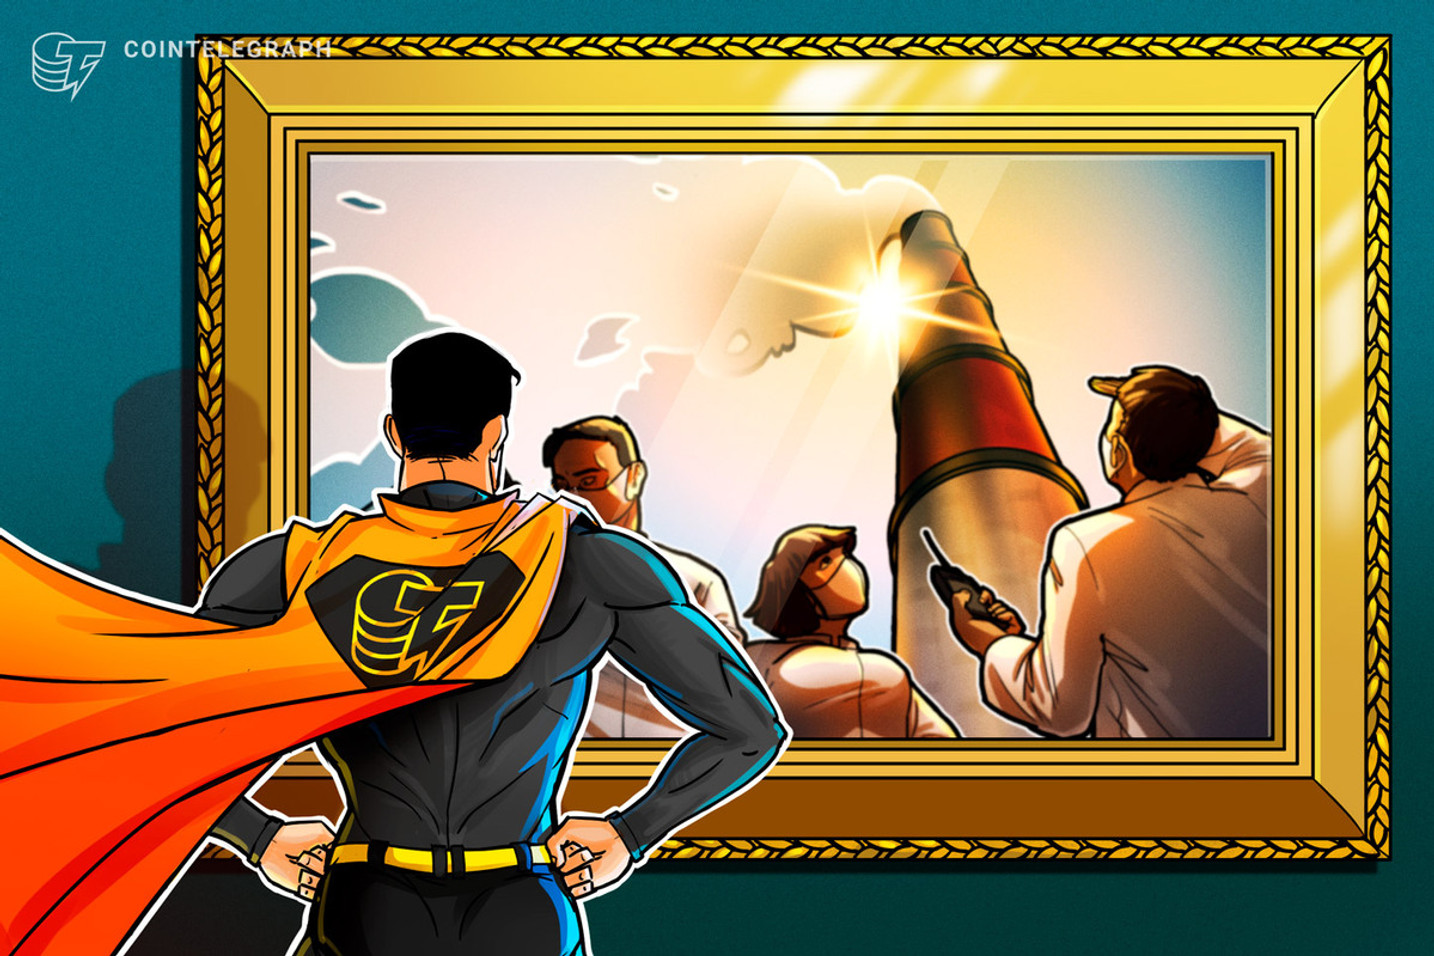 Review: Cointelegraph-Inspired Climate Change Art Exhibition